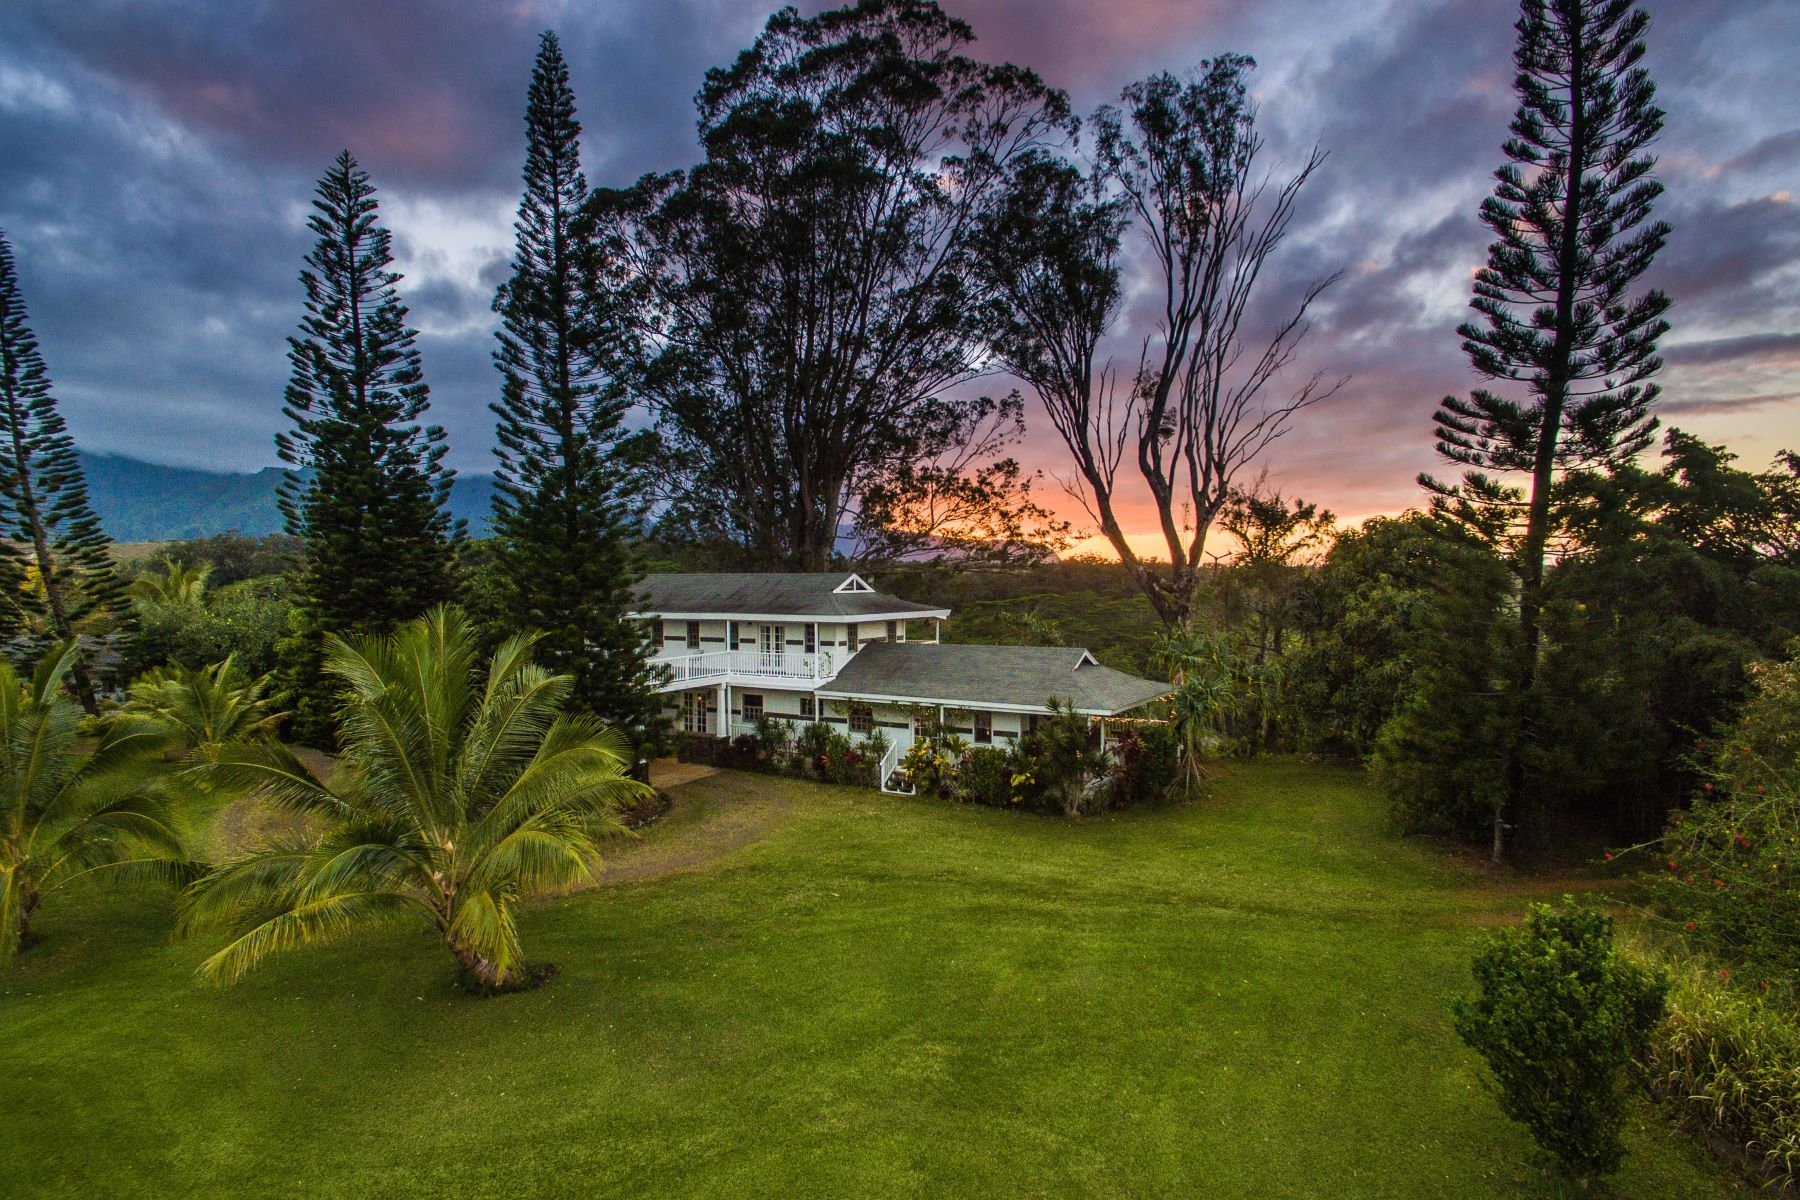 Villa per Vendita alle ore Kauai 5-Acre Multi-Family Estate with Mountain, Waterfall, Sunset & Valley Views 5150 Kahiliholo Road #A, Kilauea, Hawaii, 96754 Stati Uniti